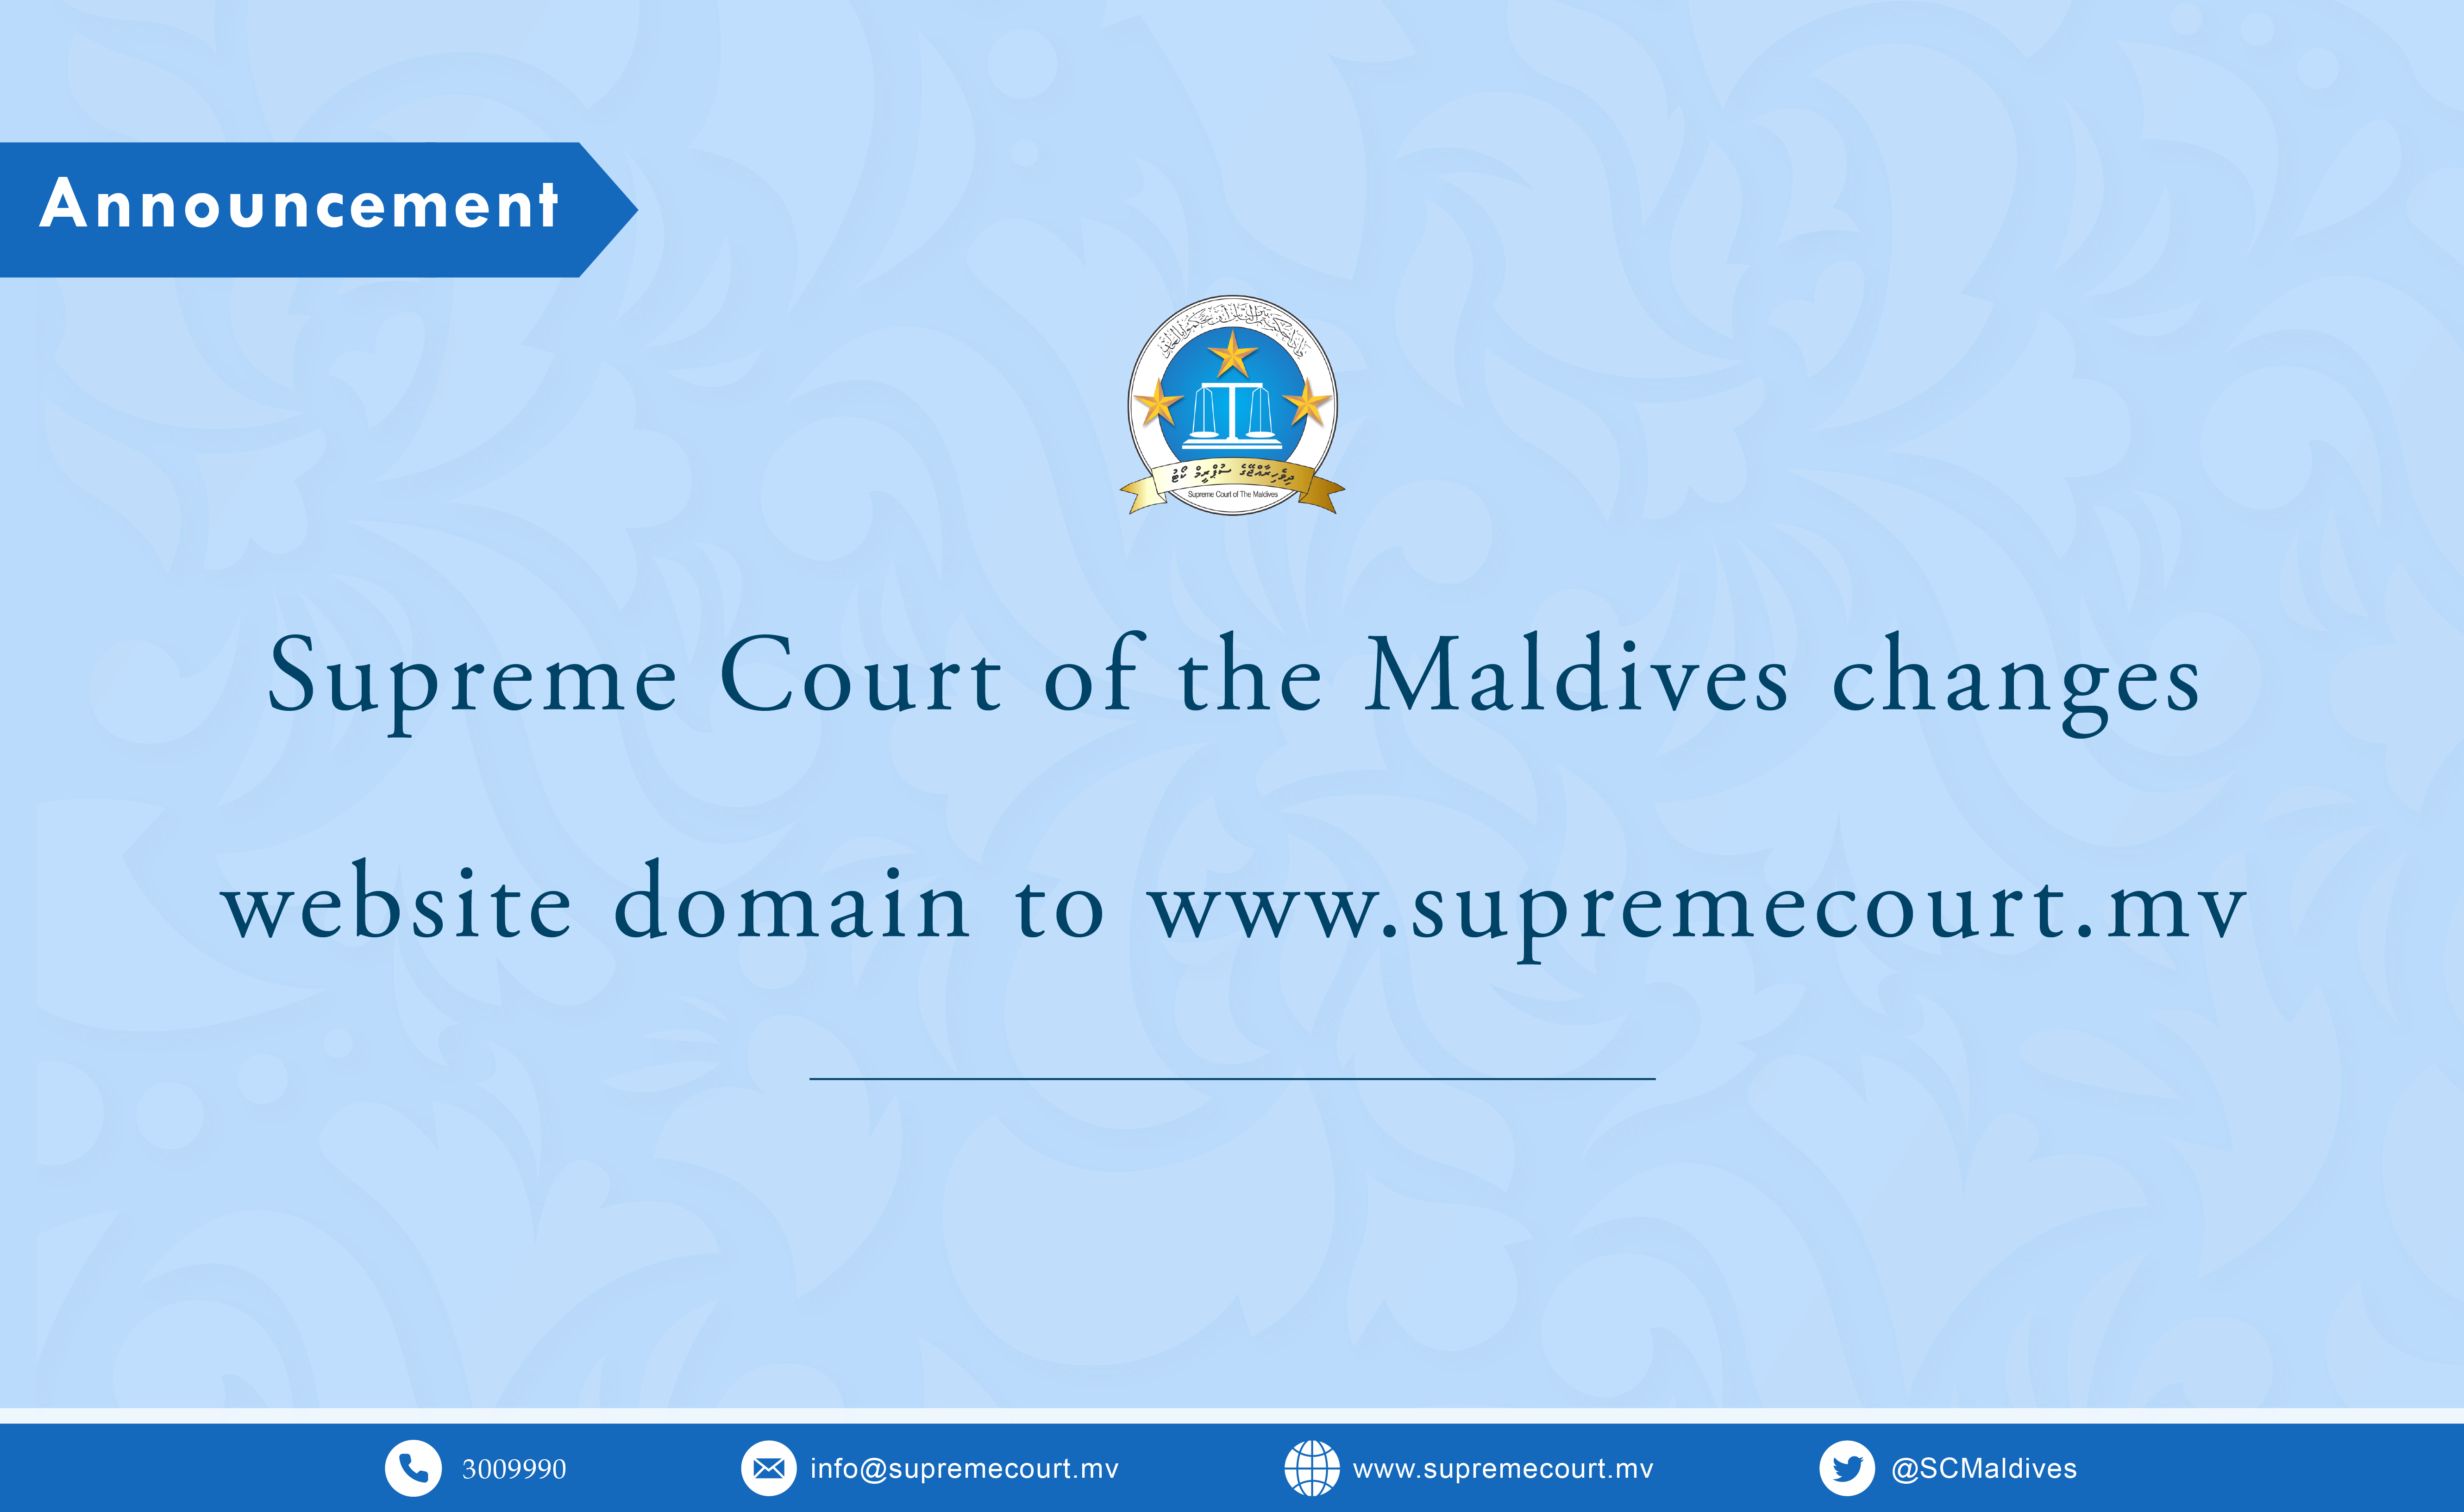 Supreme Court Upgrades Website with New Domain